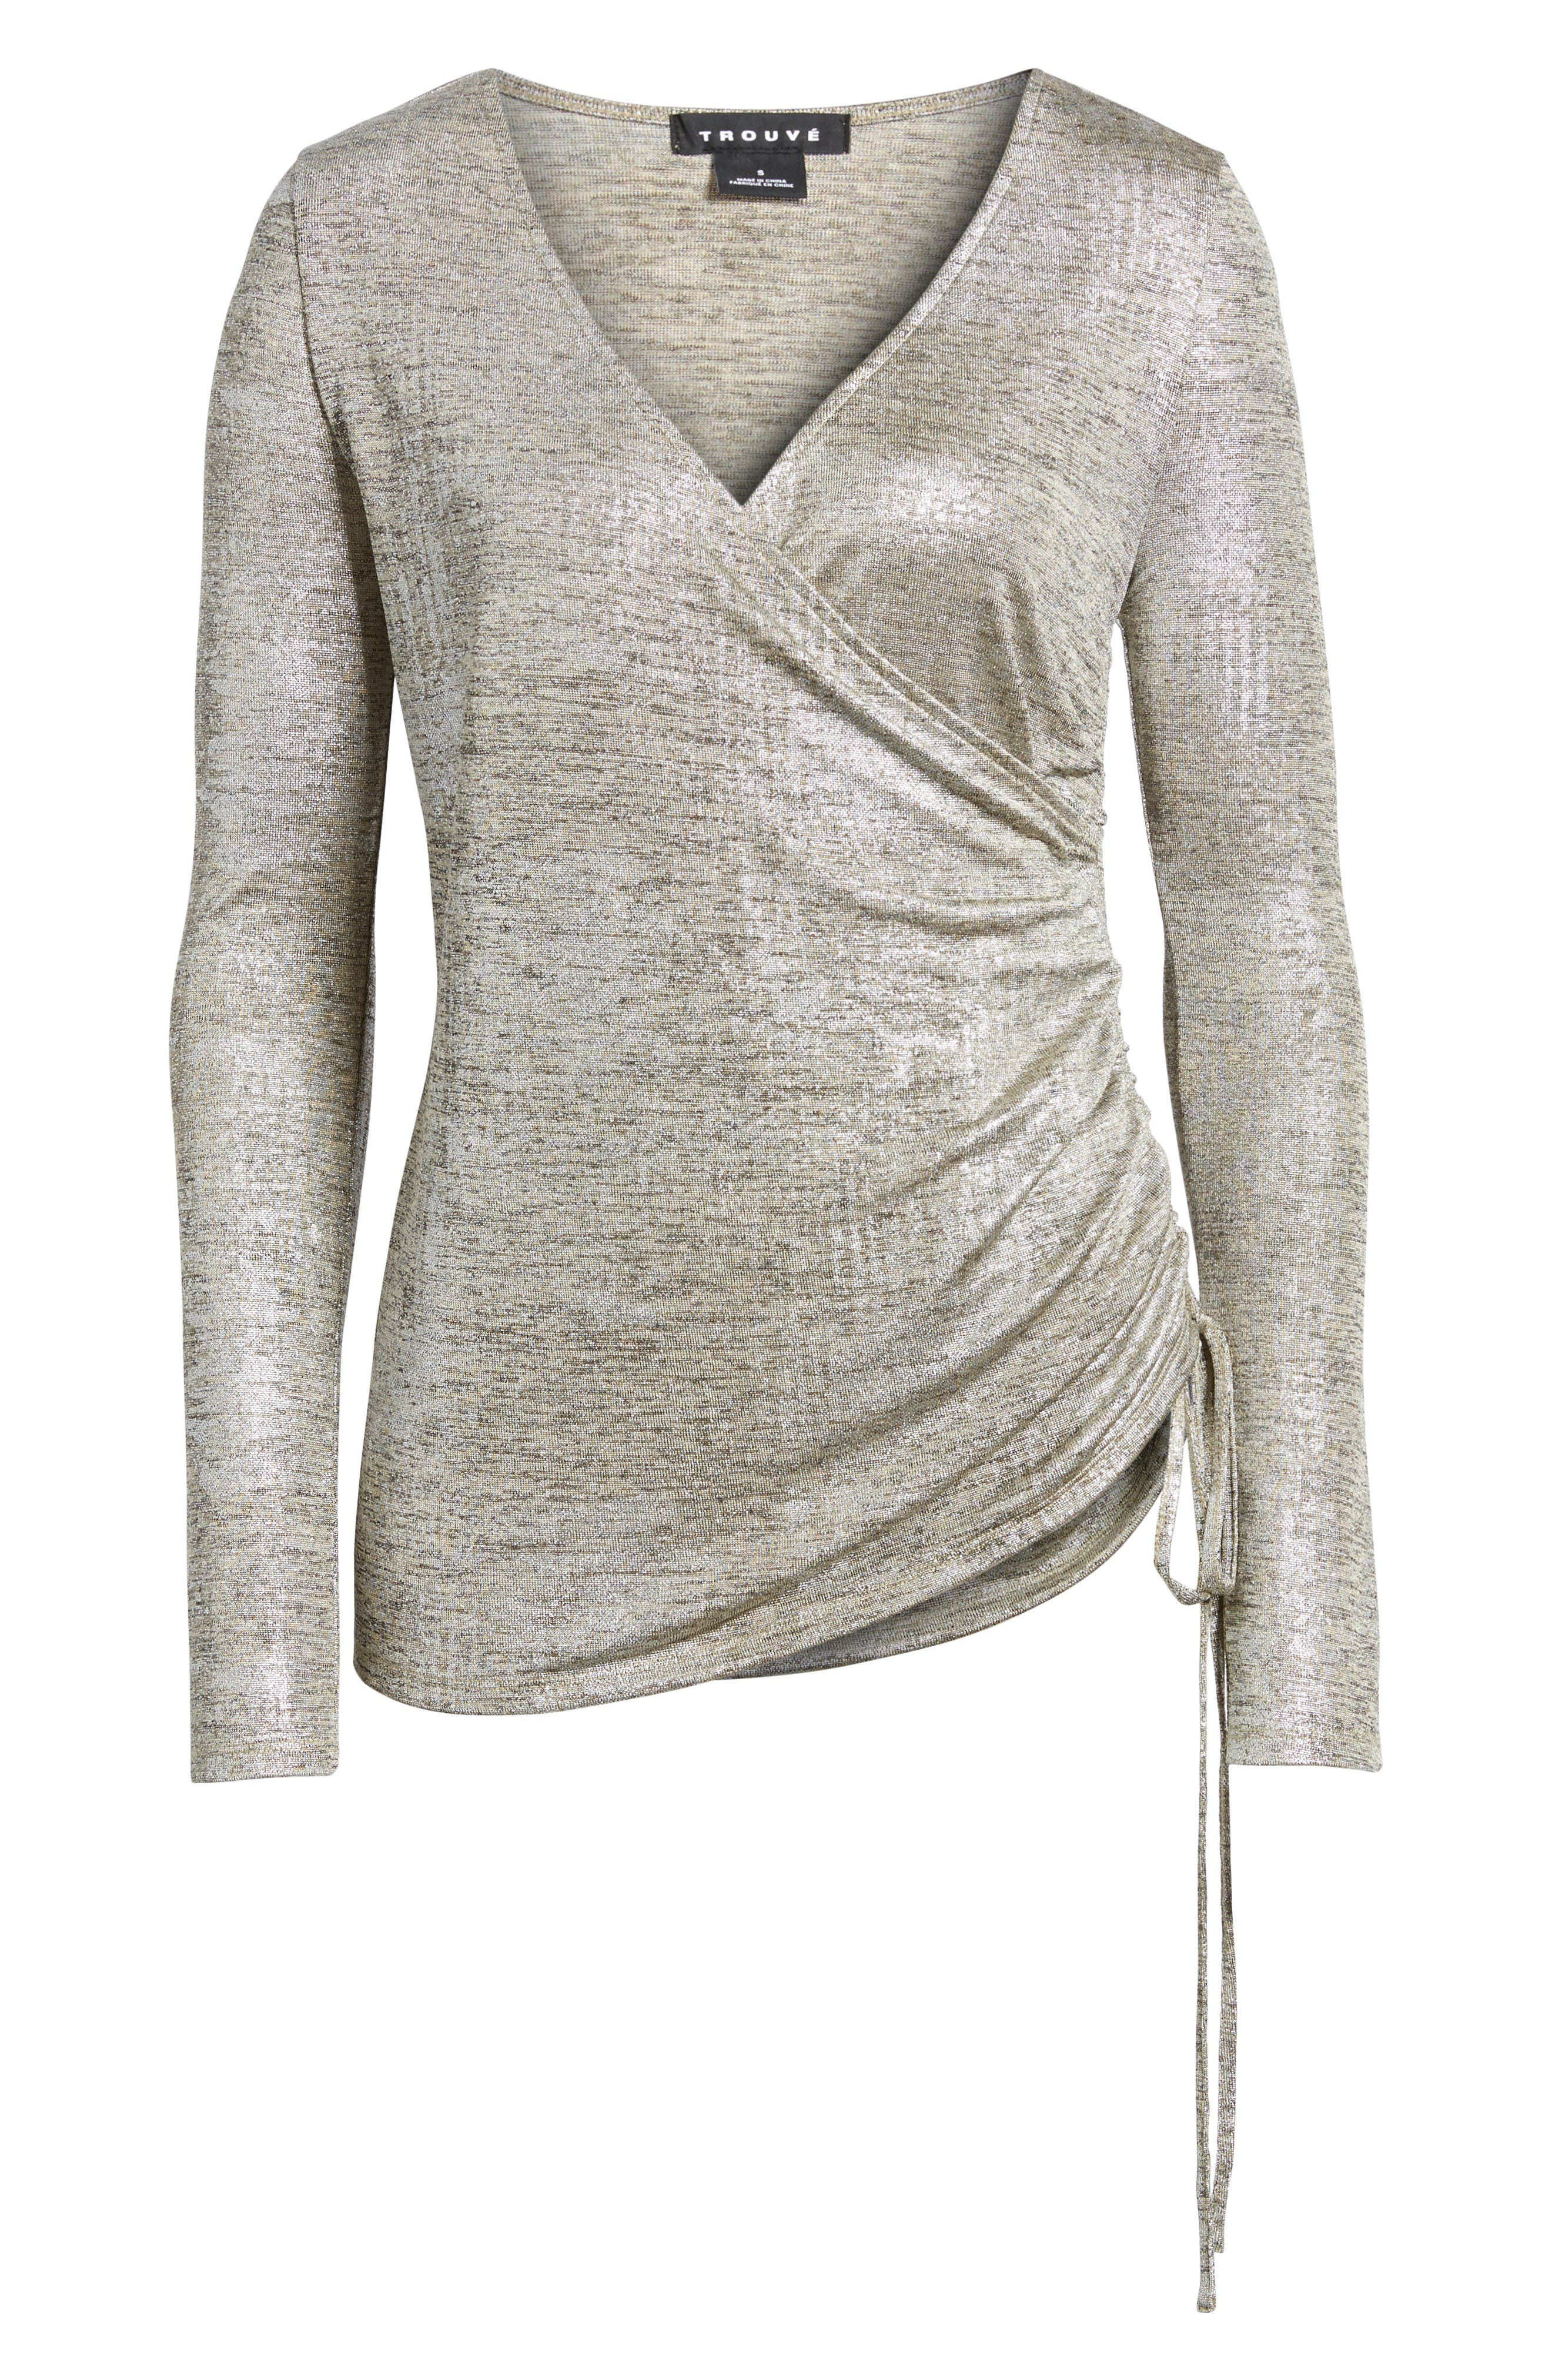 Ruched Metallic Top,                             Alternate thumbnail 6, color,                             040